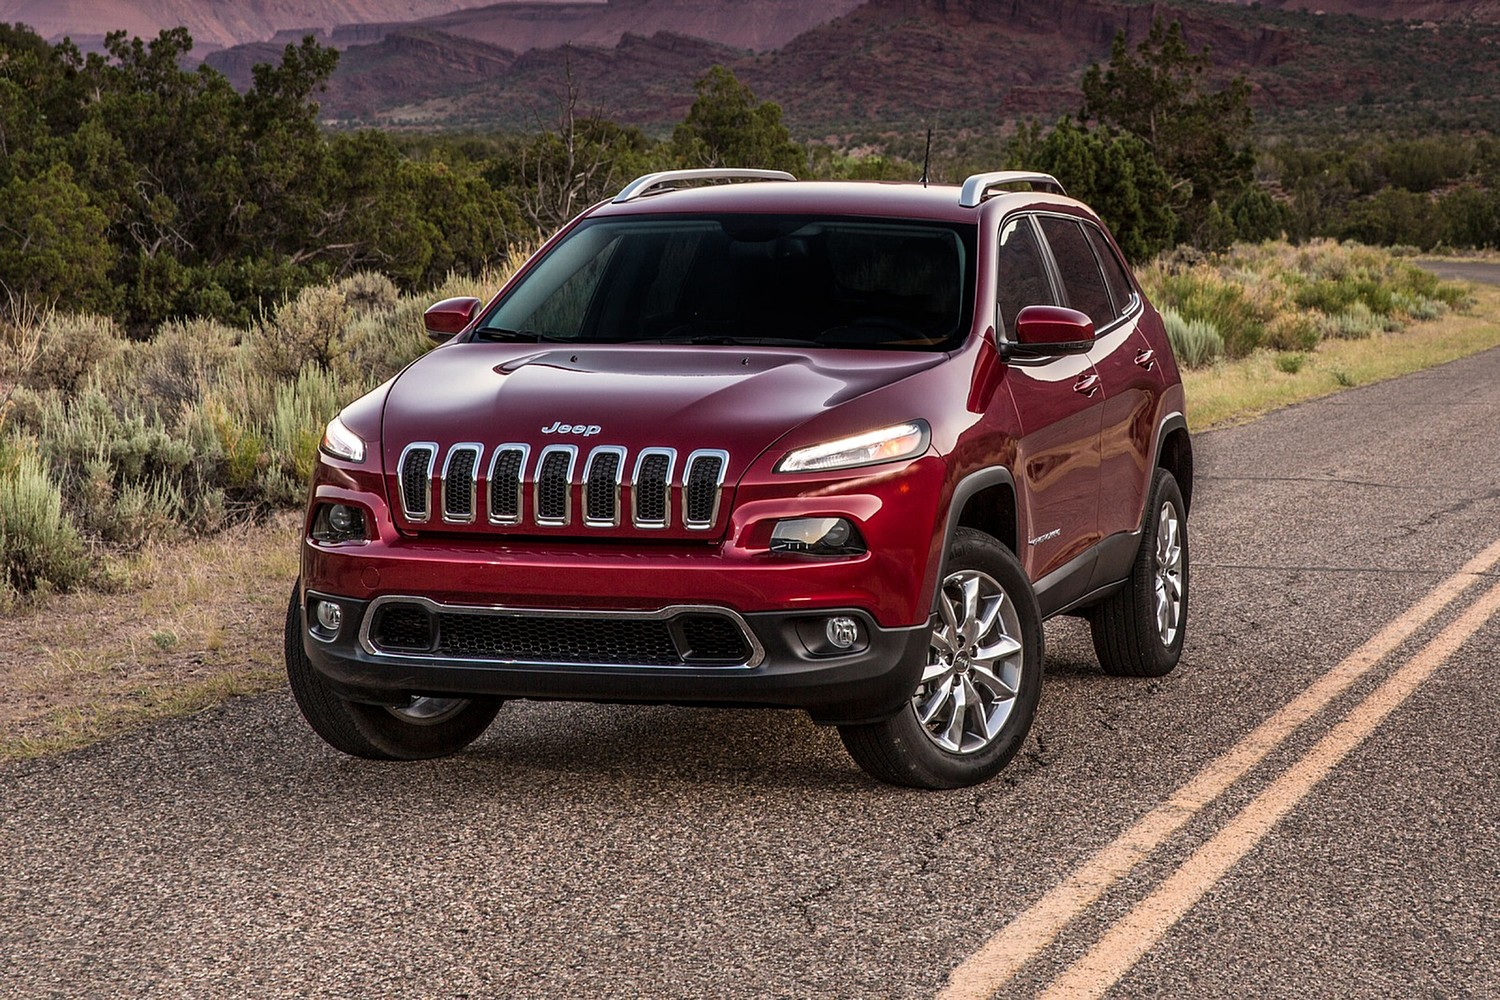 2018 Jeep Cherokee Limited 4dr SUV Exterior Shown